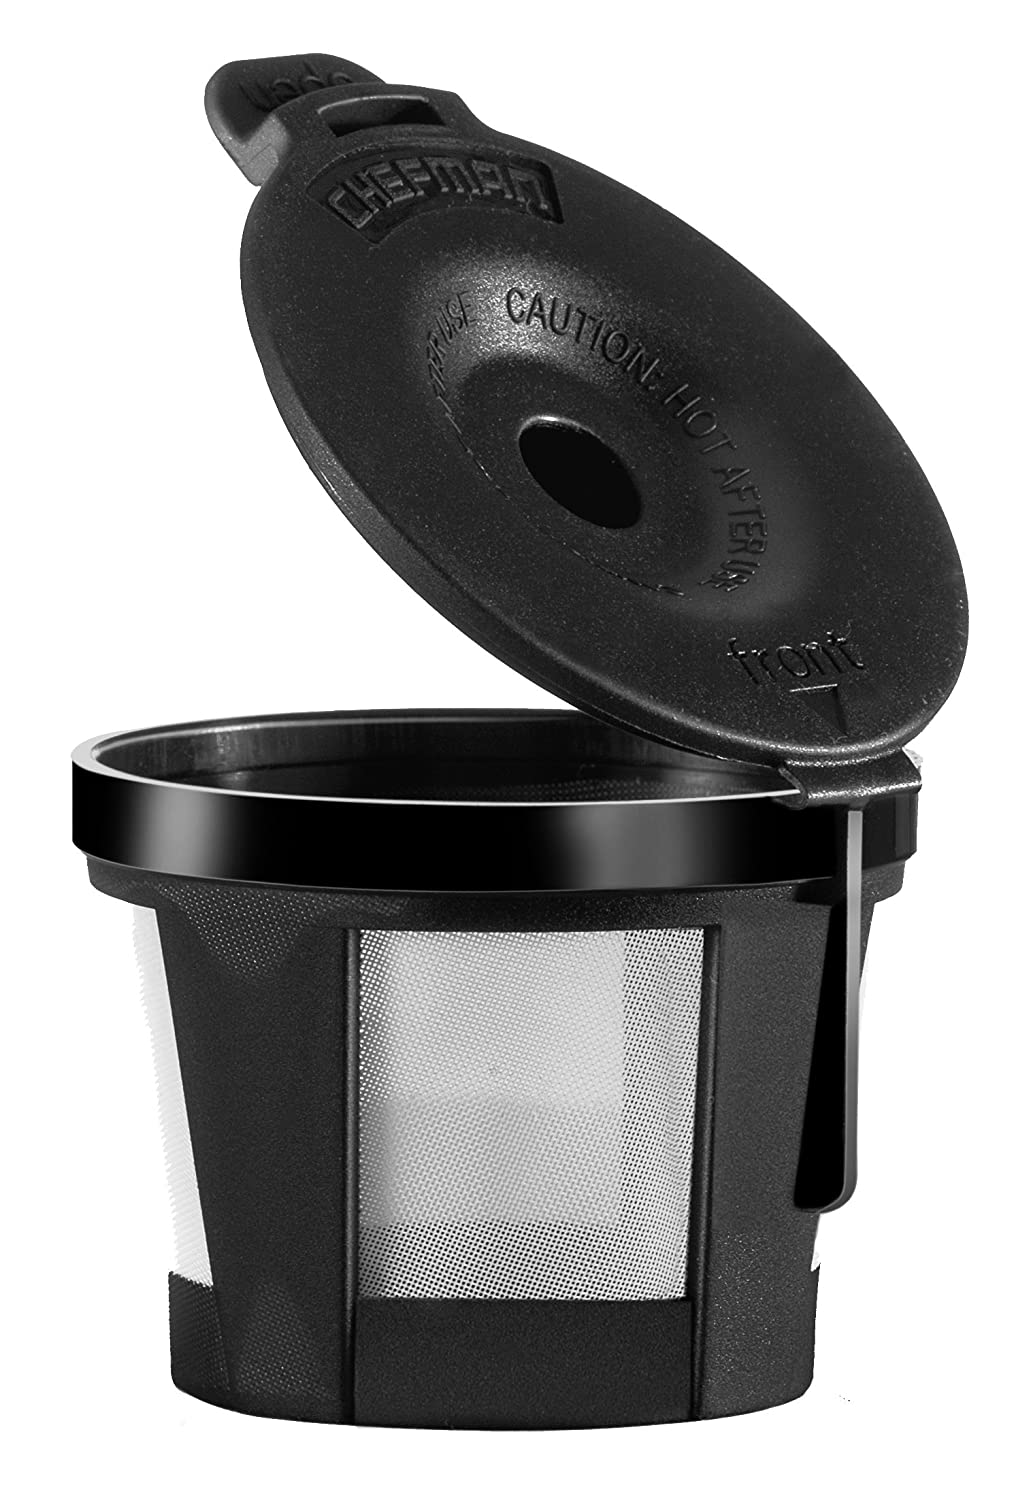 Chefman Reusable Filter for Single Brew K-Cup Makers Fits All RJ14-SKG Models Stainless Steel and Mesh, Compatible Grounds or Tea, Coffee Pod Replacement,